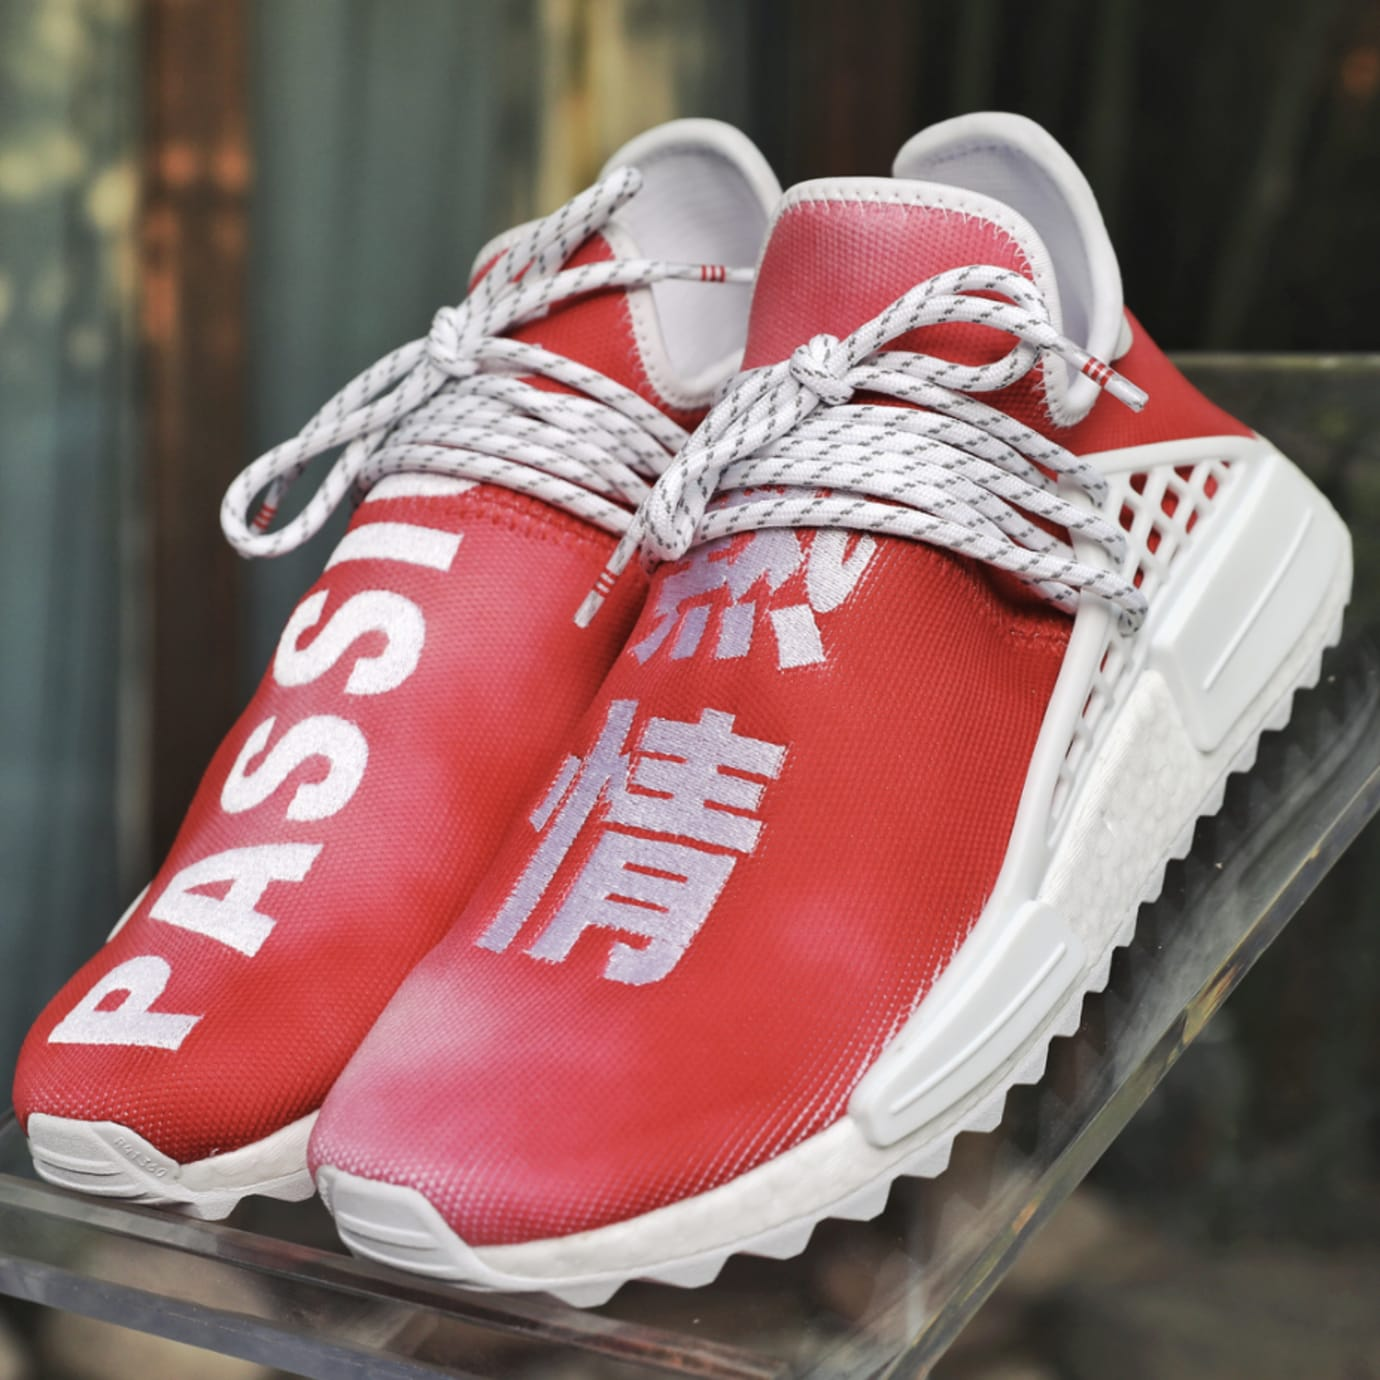 001dbdd61 Image via Instagram   kicksvision Pharrell x adidas nmd hu china pack   passion red